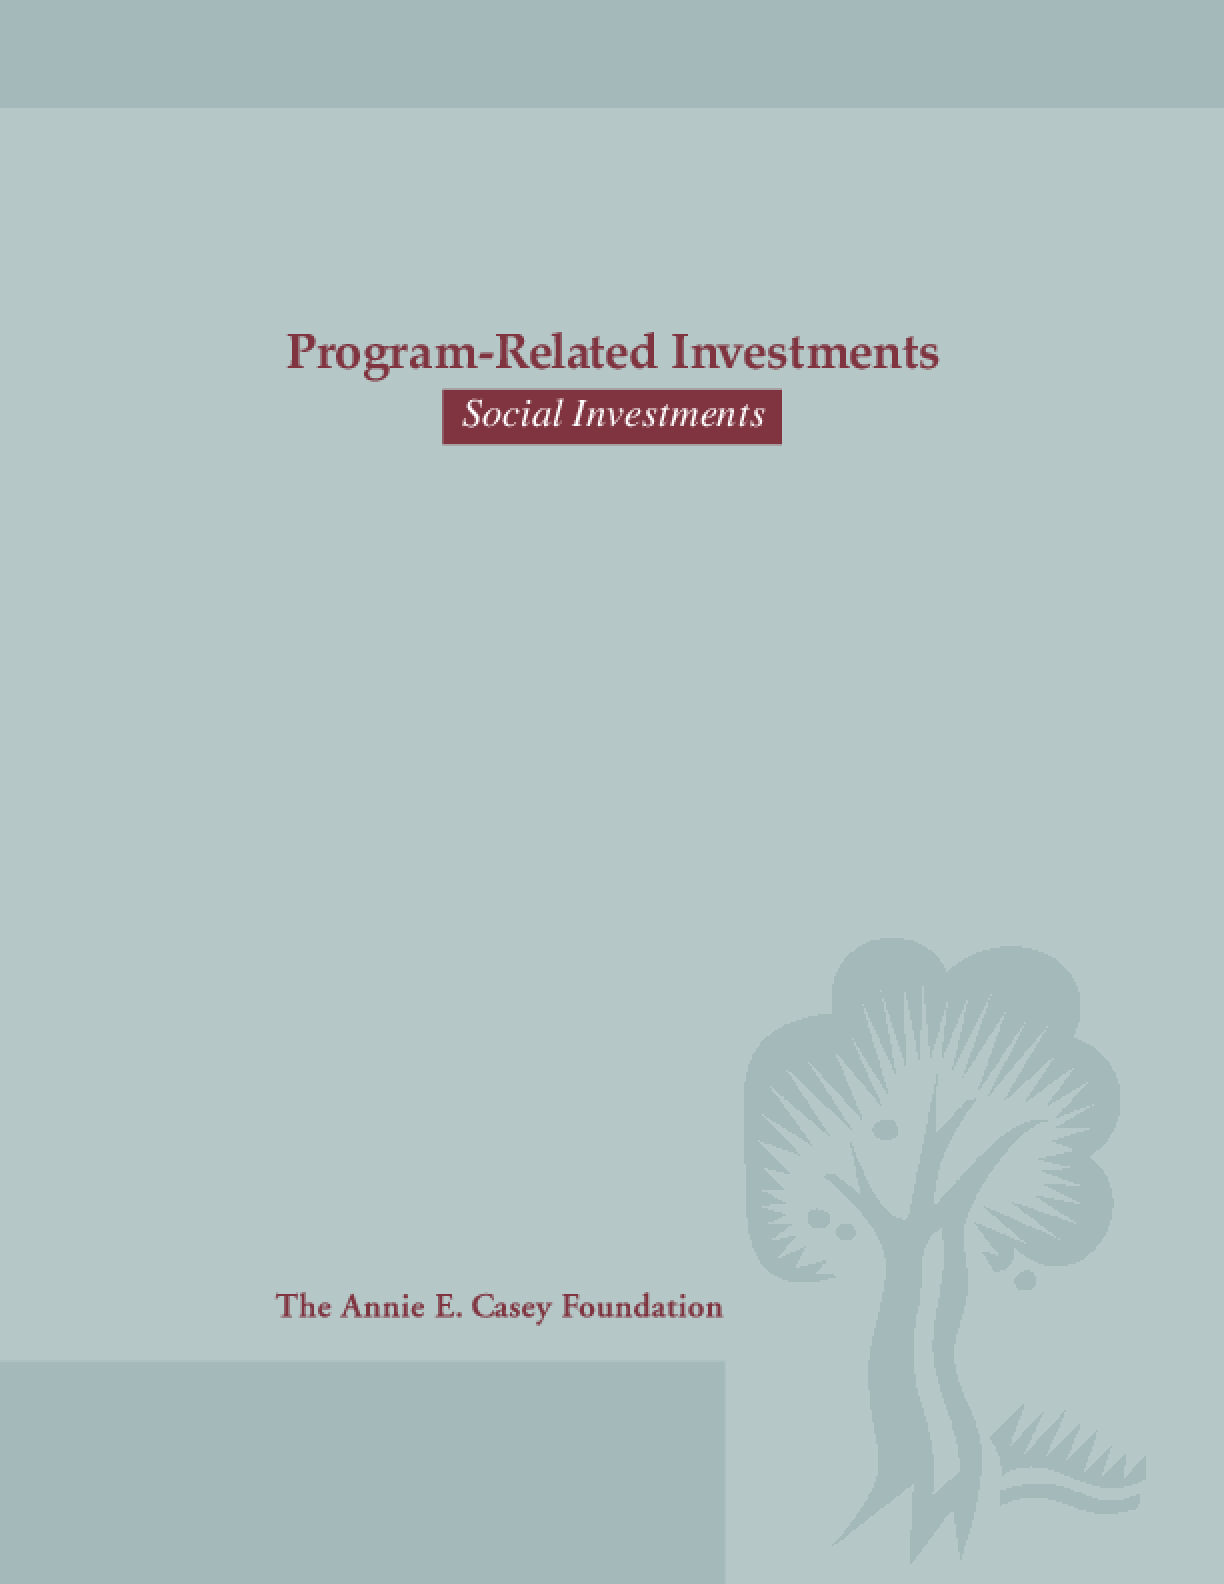 Program-Related Investments: Social Investments